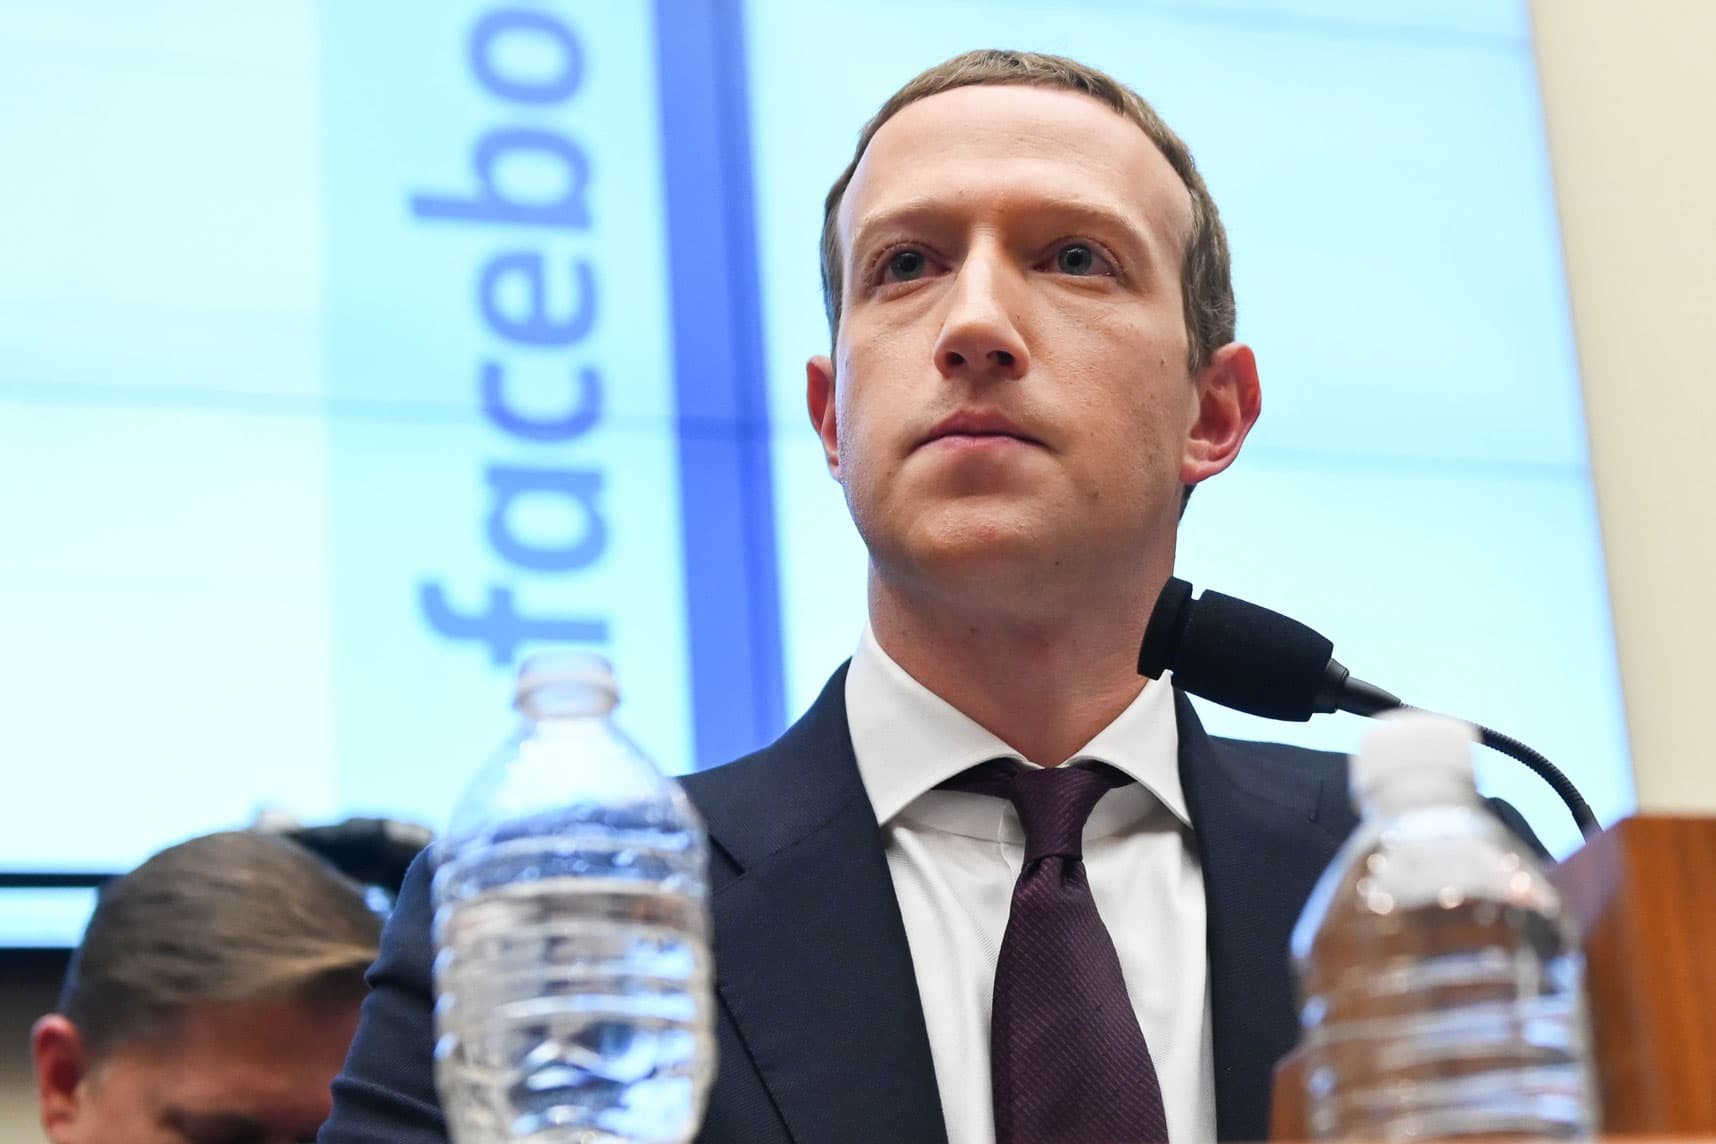 Facebook is cracking down on groups worldwide to slow the spread of political disinformation